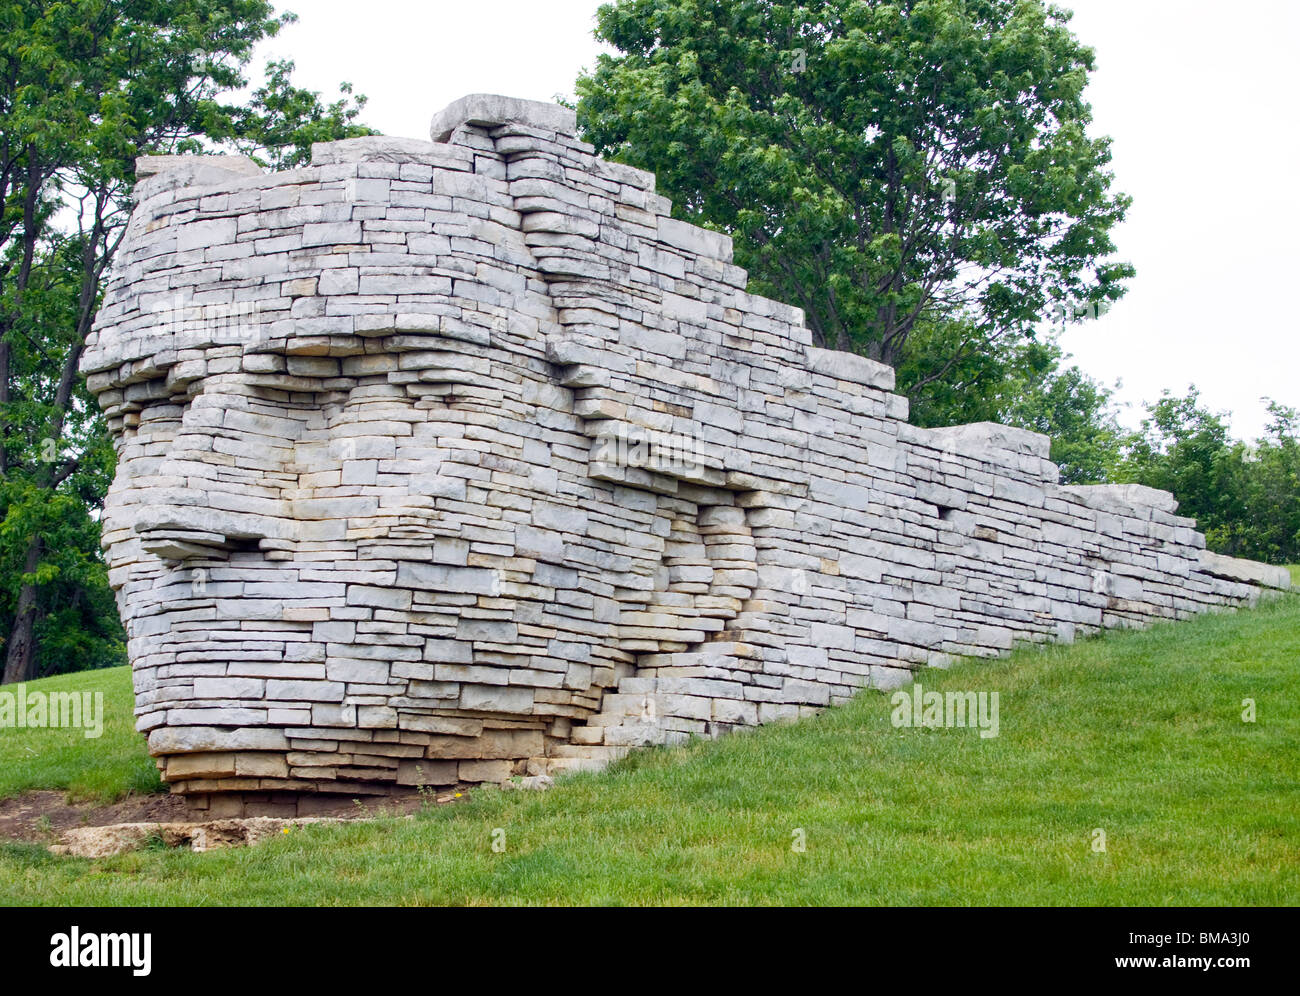 Chief Leatherlips Statue in a park in Dublin Ohio - Stock Image